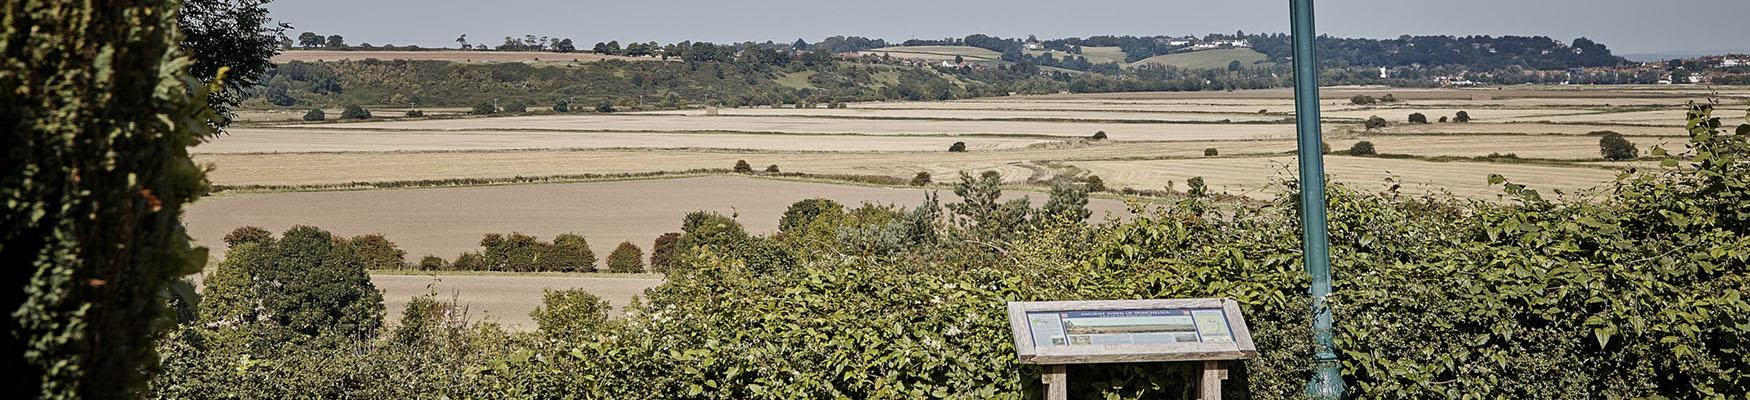 View of the hills and fields in Winchelsea